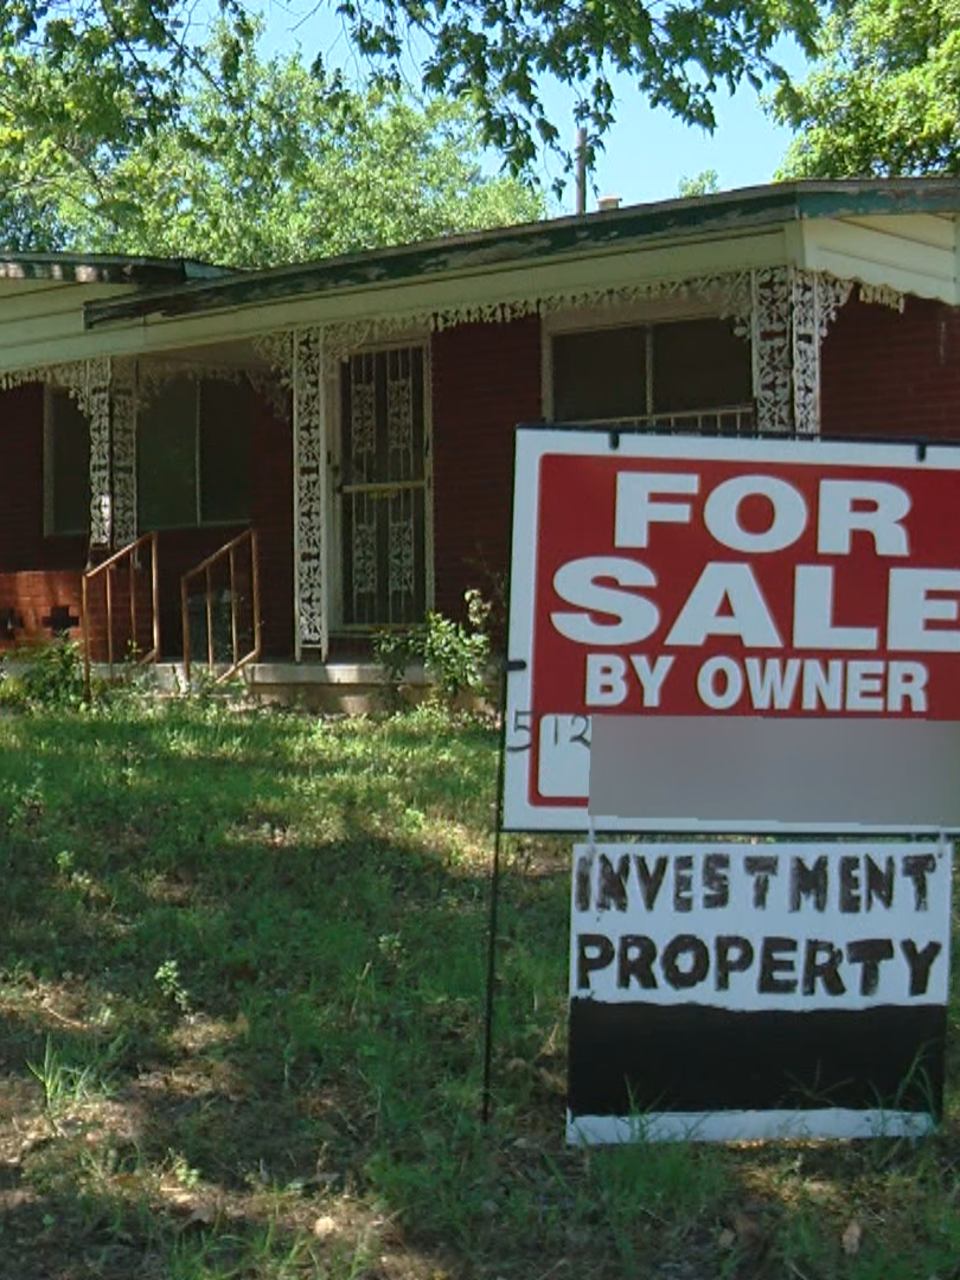 Austin foreclosure investment properties ar investment solutions llc.